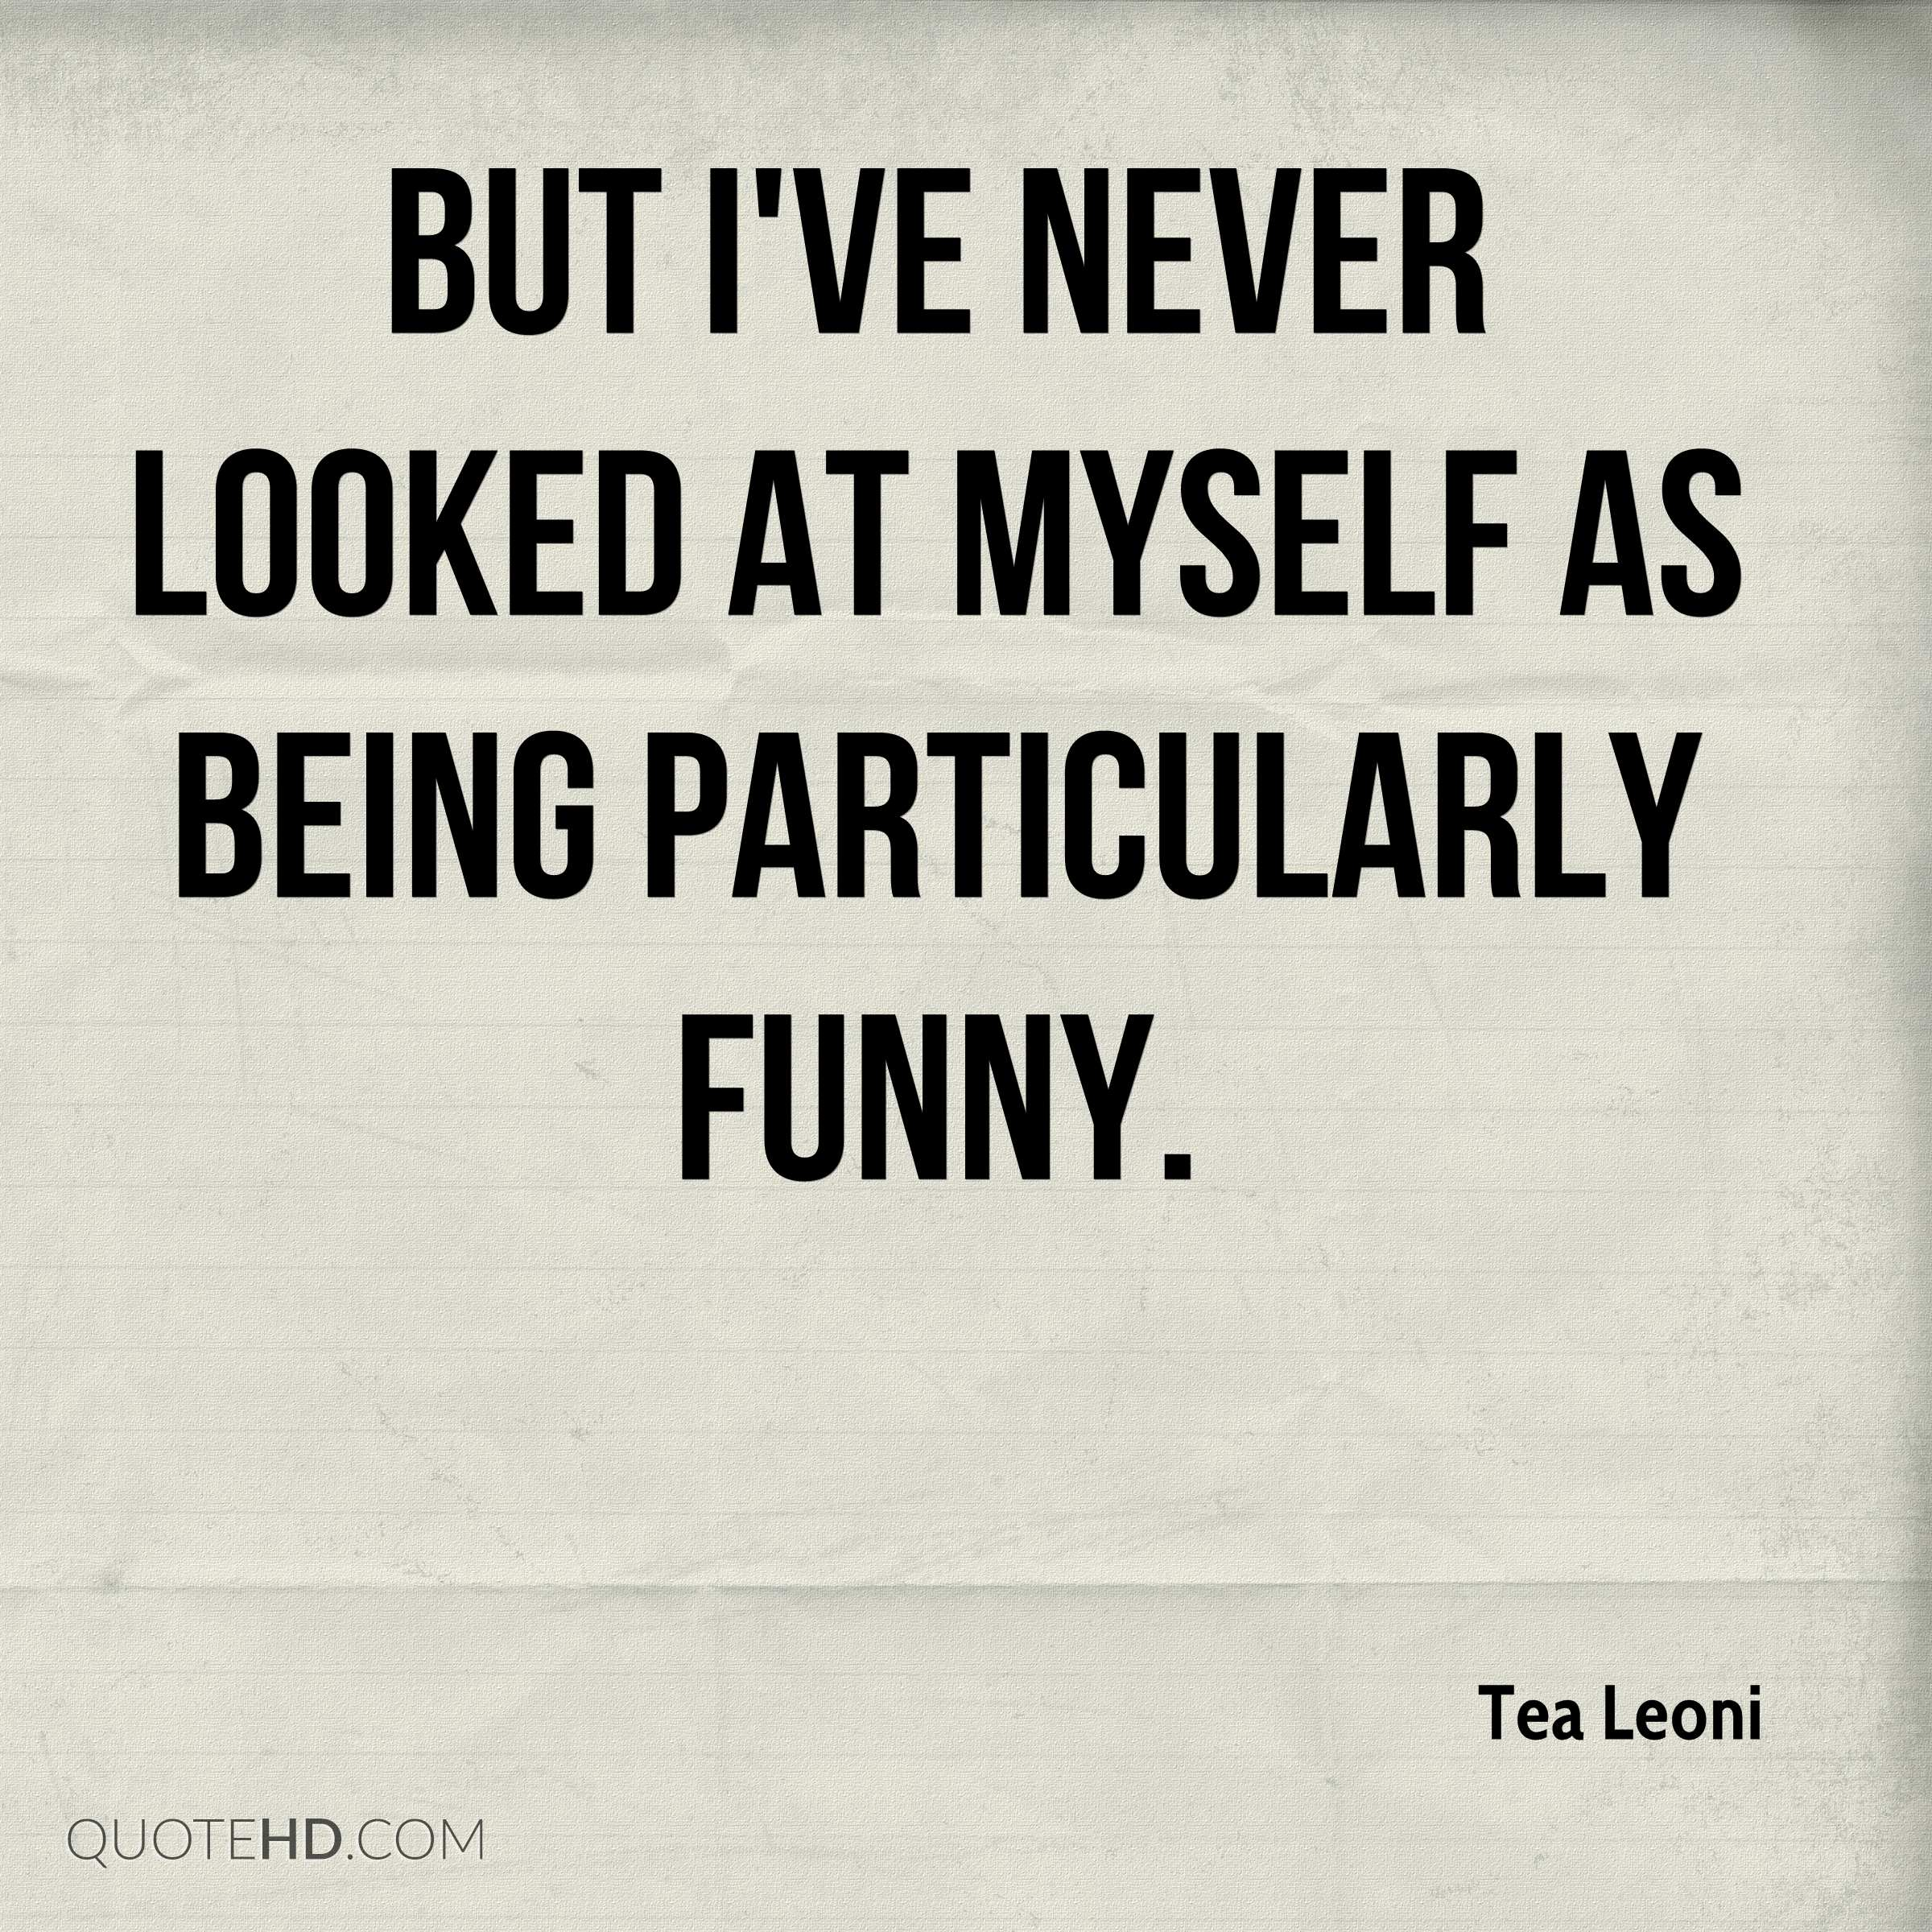 But I've never looked at myself as being particularly funny.